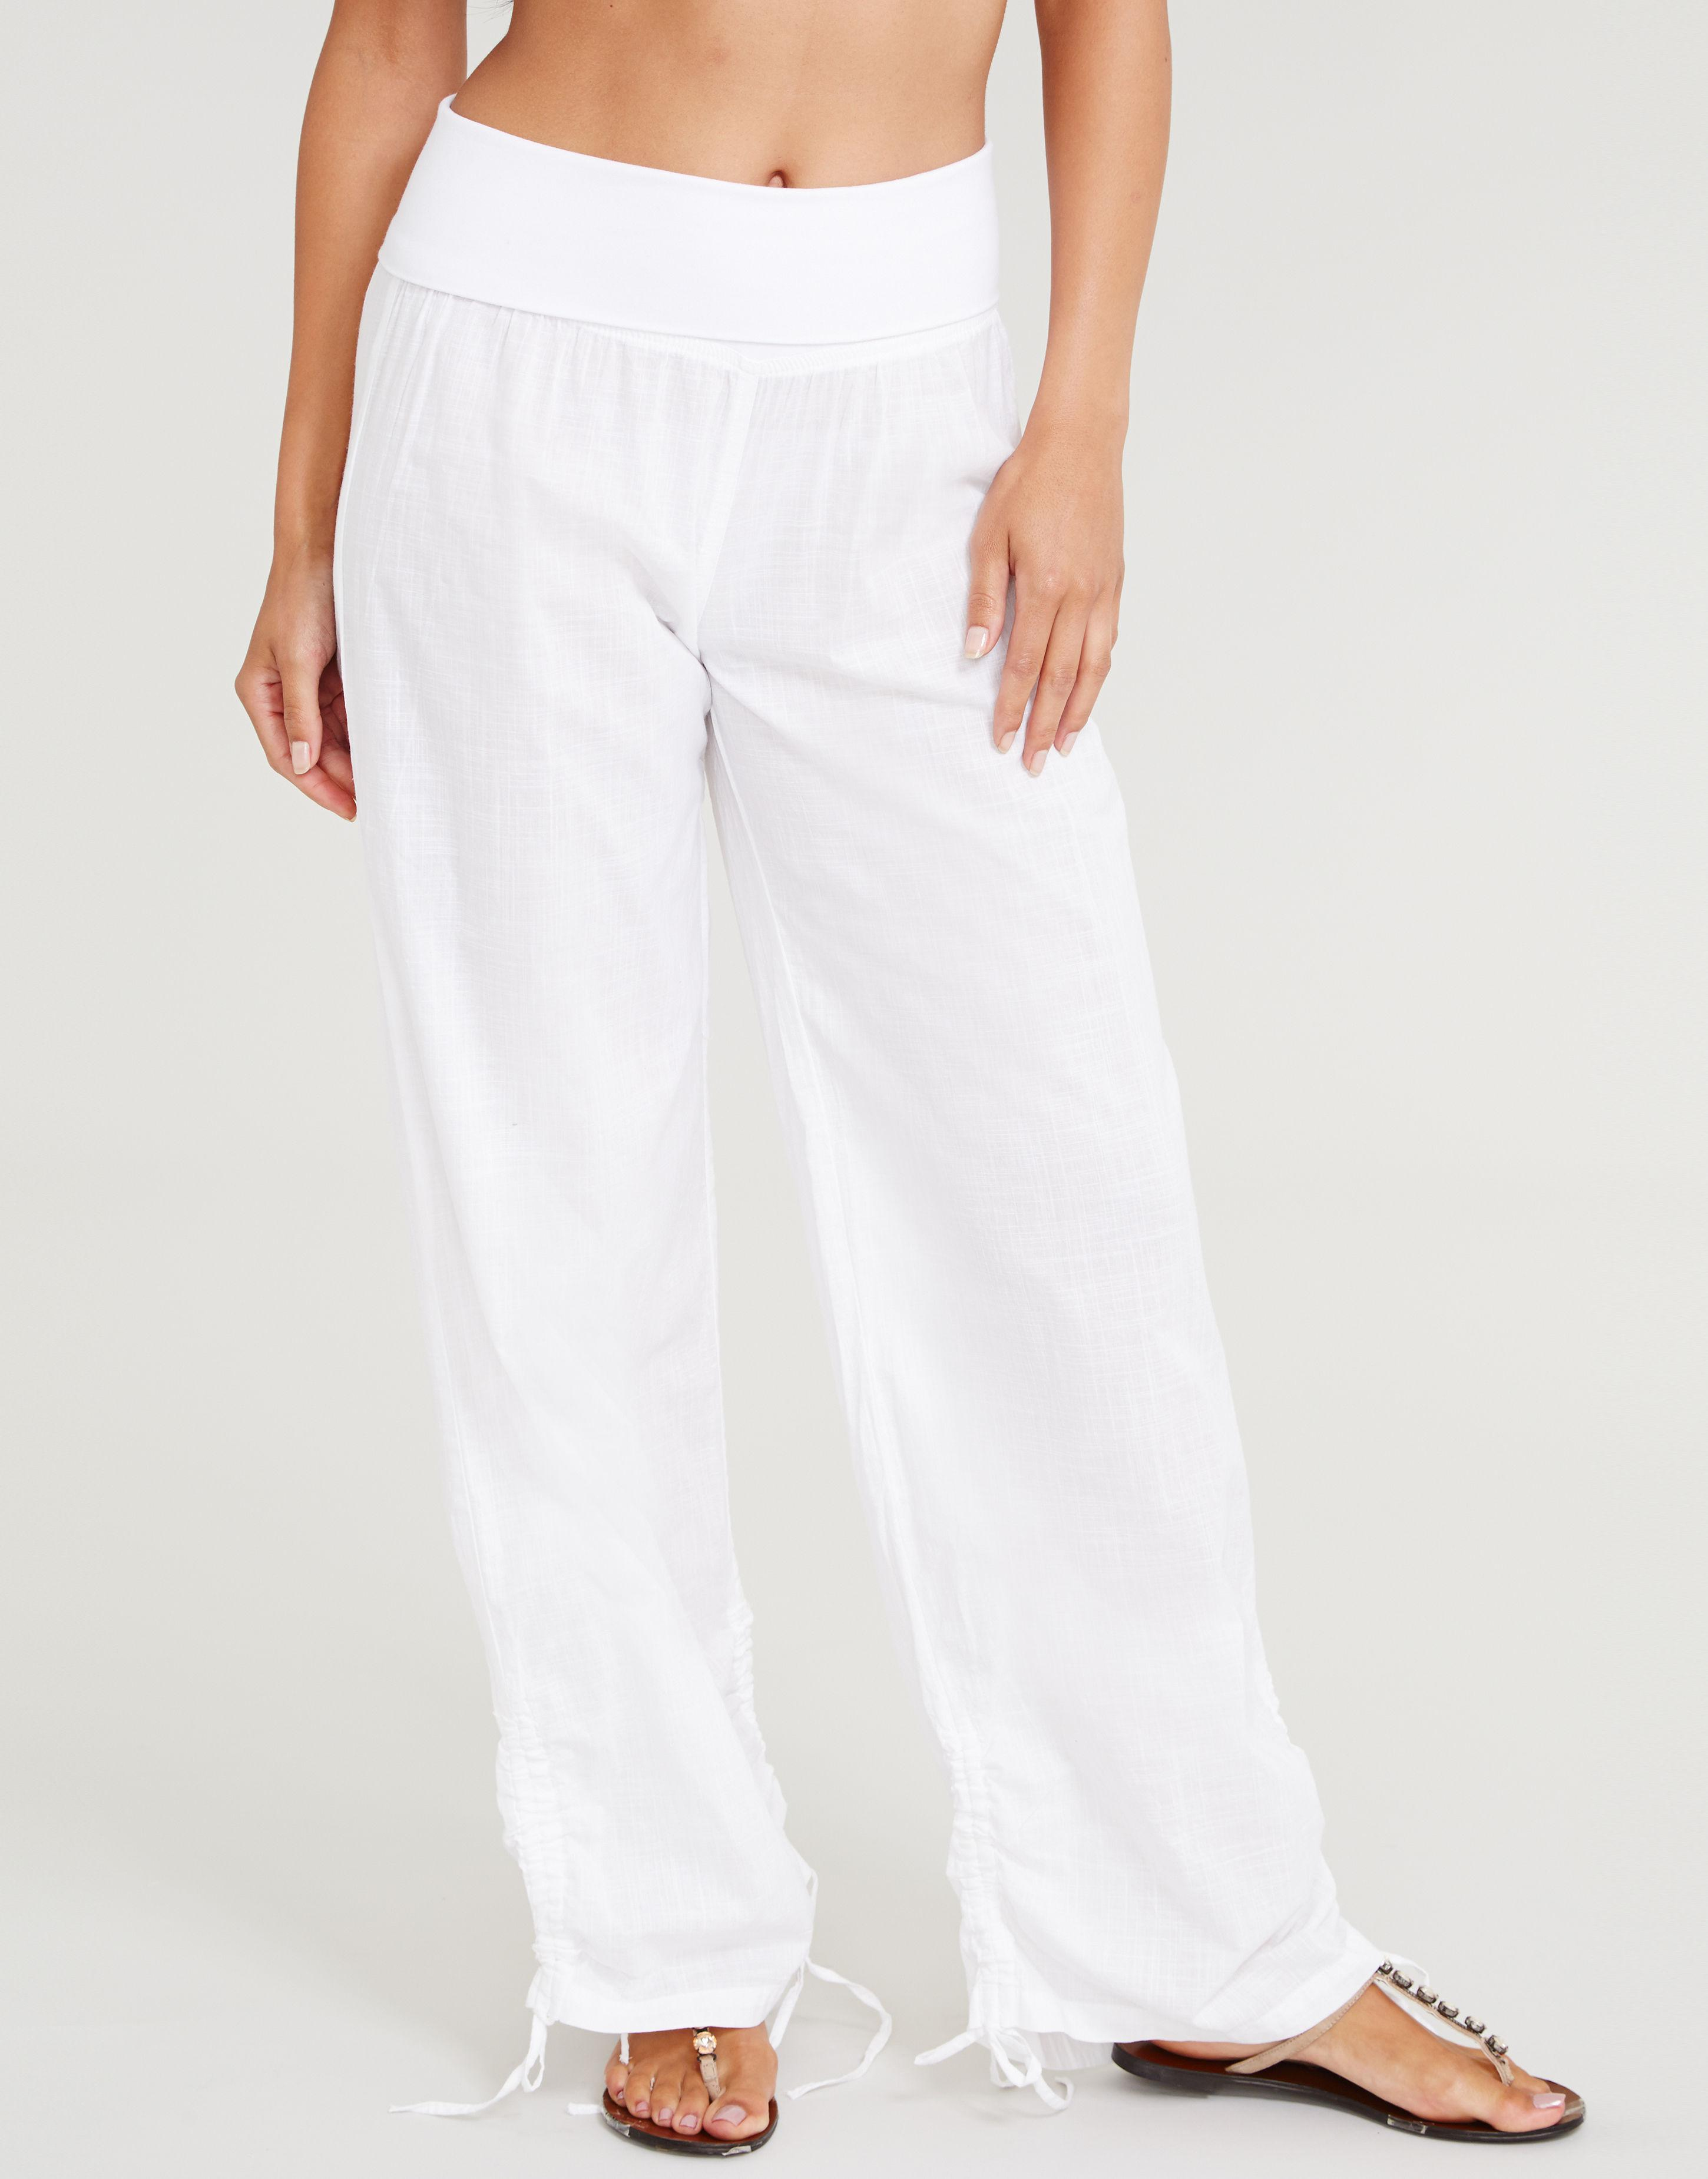 genuine shoes discount complete range of articles Figleaves St Maxime Cotton Beach Pant in White - Lyst